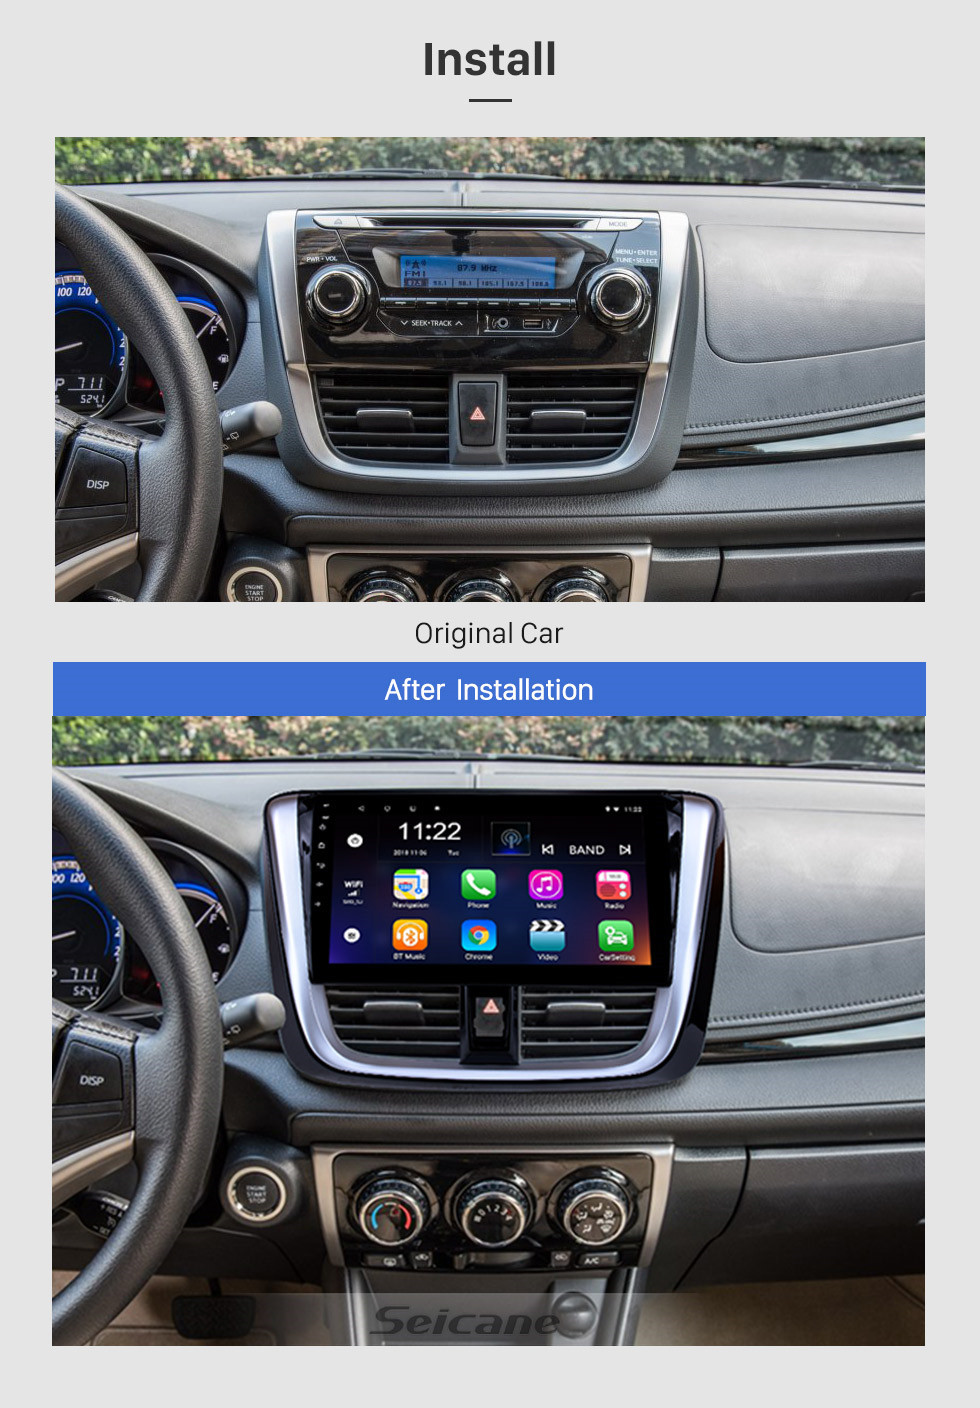 Seicane 10.1 inch 2014 2015 2016 2017 TOYOTA VIOS Yaris Android 10.0 HD Touchscreen Radio Head Unit GPS Navigation System Support Bluetooth OBD II DVR 3G WIFI Rear view camera